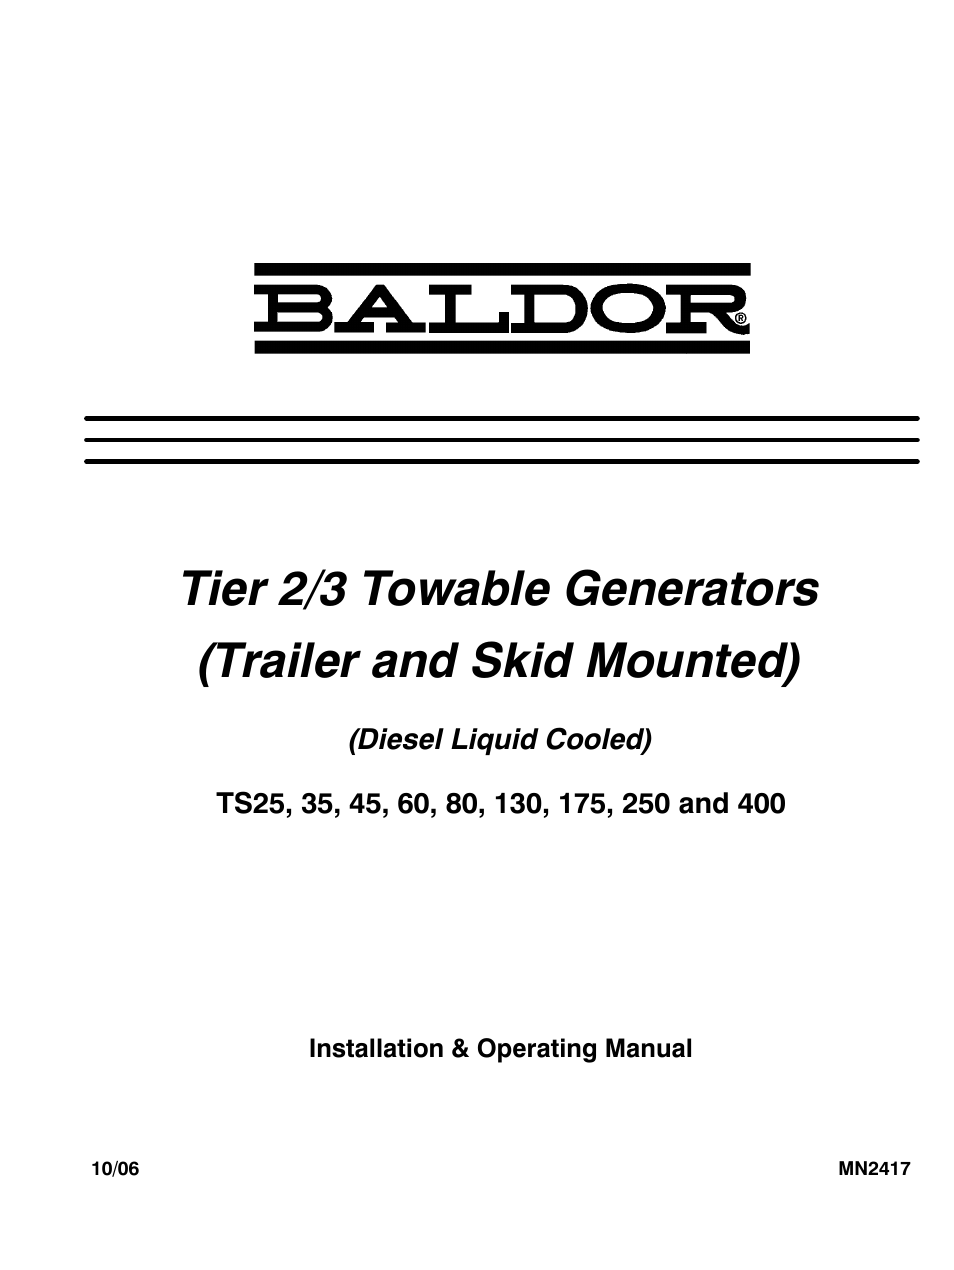 Baldor Ts250 User Manual 88 Pages Also For Ts60 Ts80 Ts130 Generator Wiring Diagrams Ts45 Ts25 Ts175 Ts35